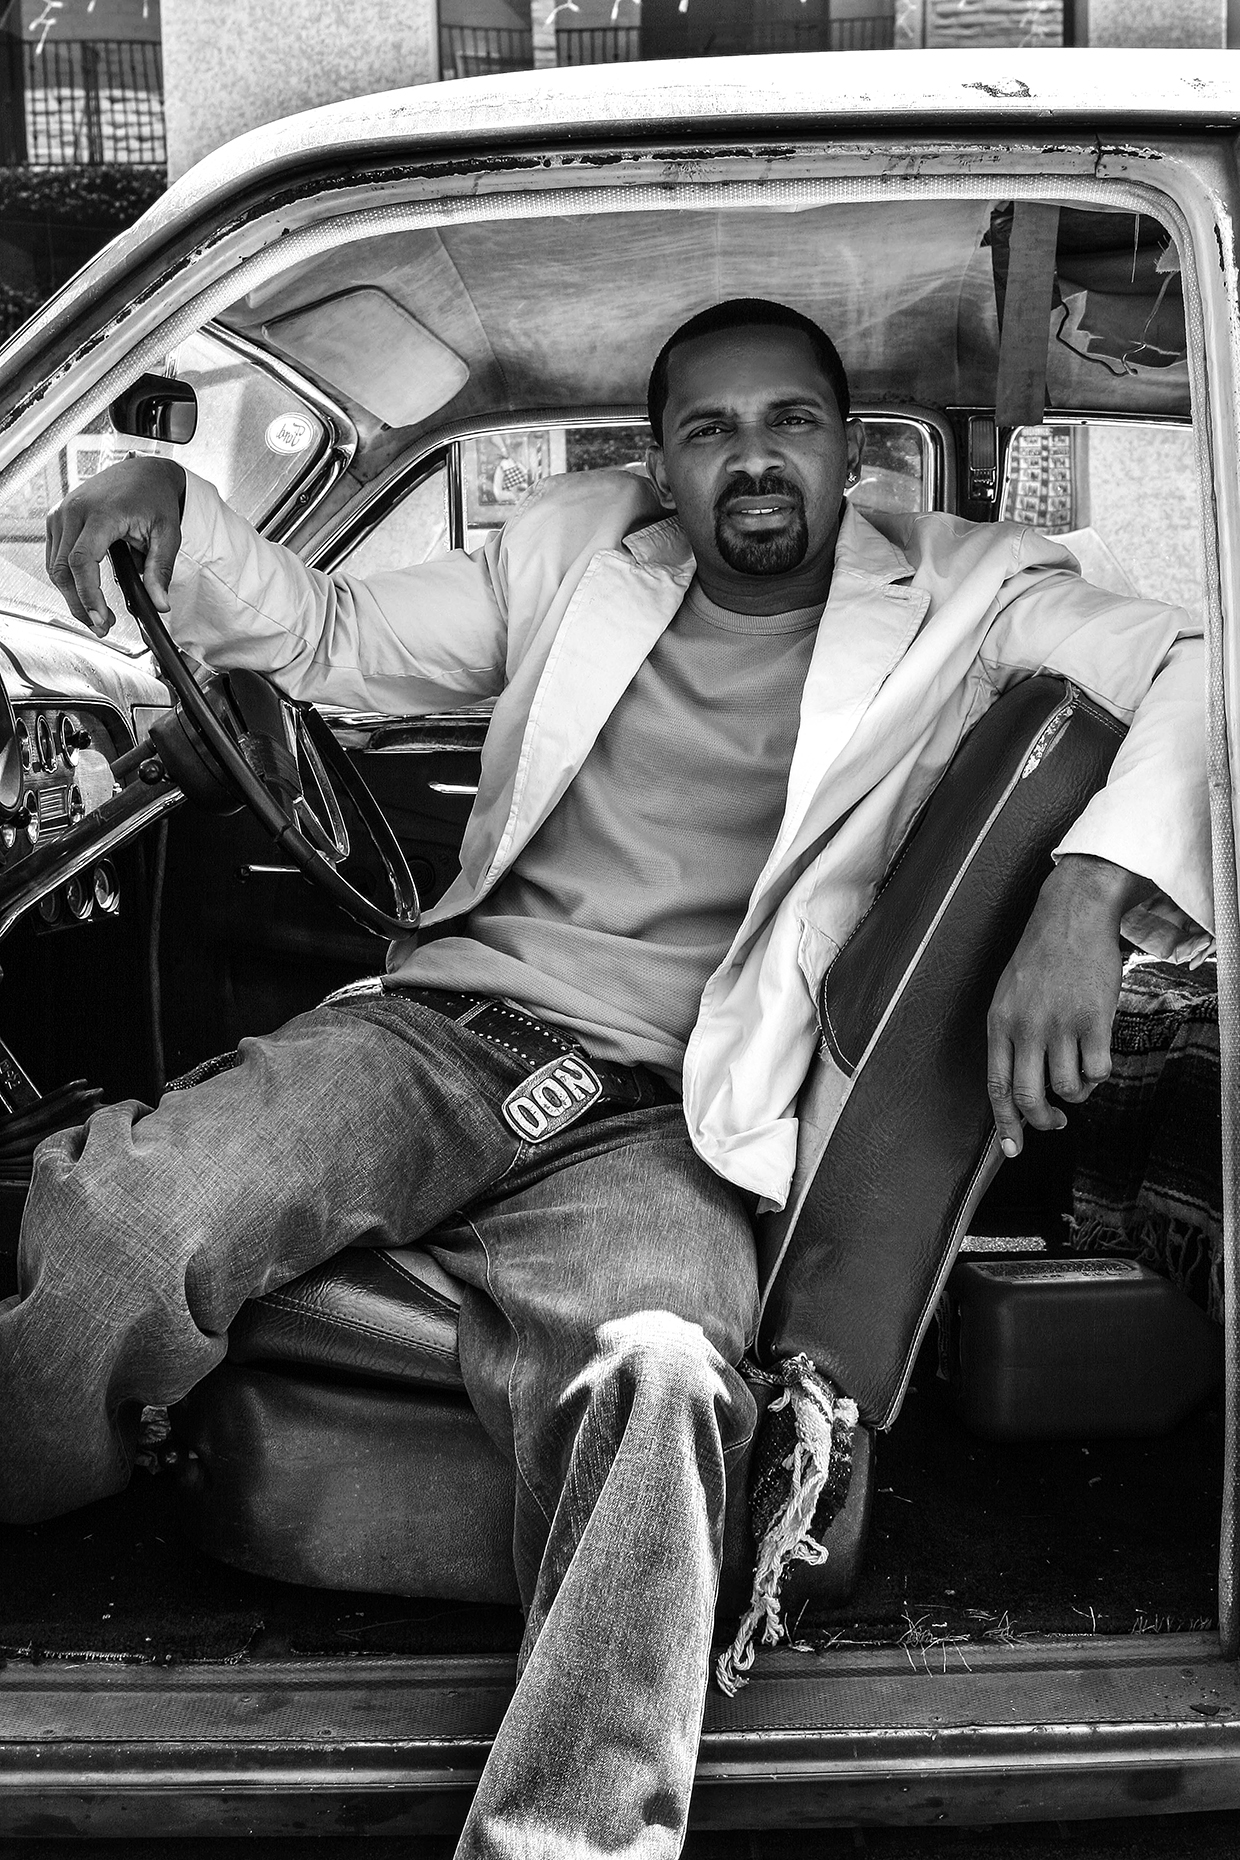 mikeepps